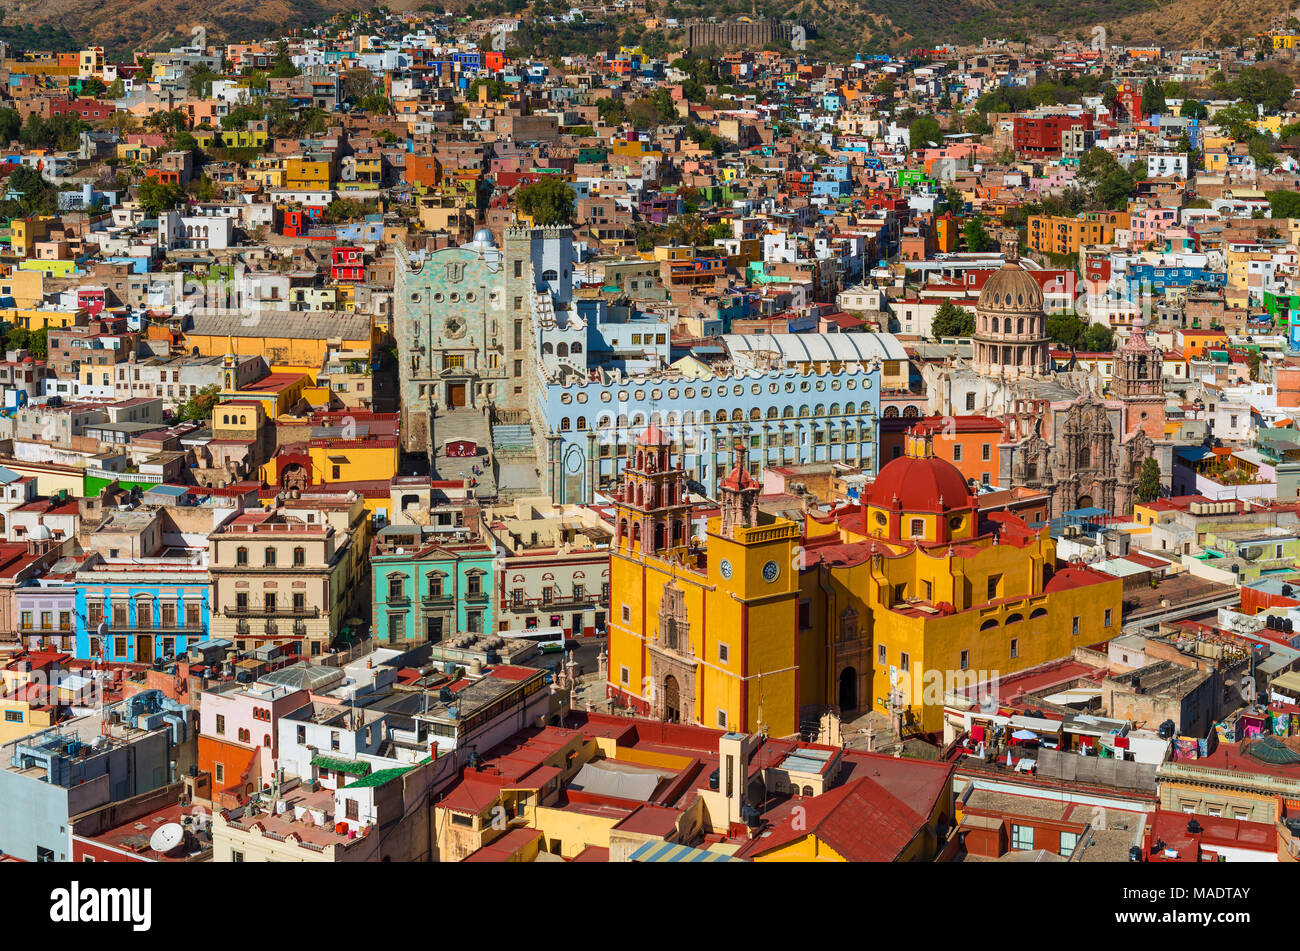 Close up and aerial view of Guanajuato city center with the Our Lady of Guanajuato Cathedral and its colourful architecture on a summer day, Mexico. - Stock Image